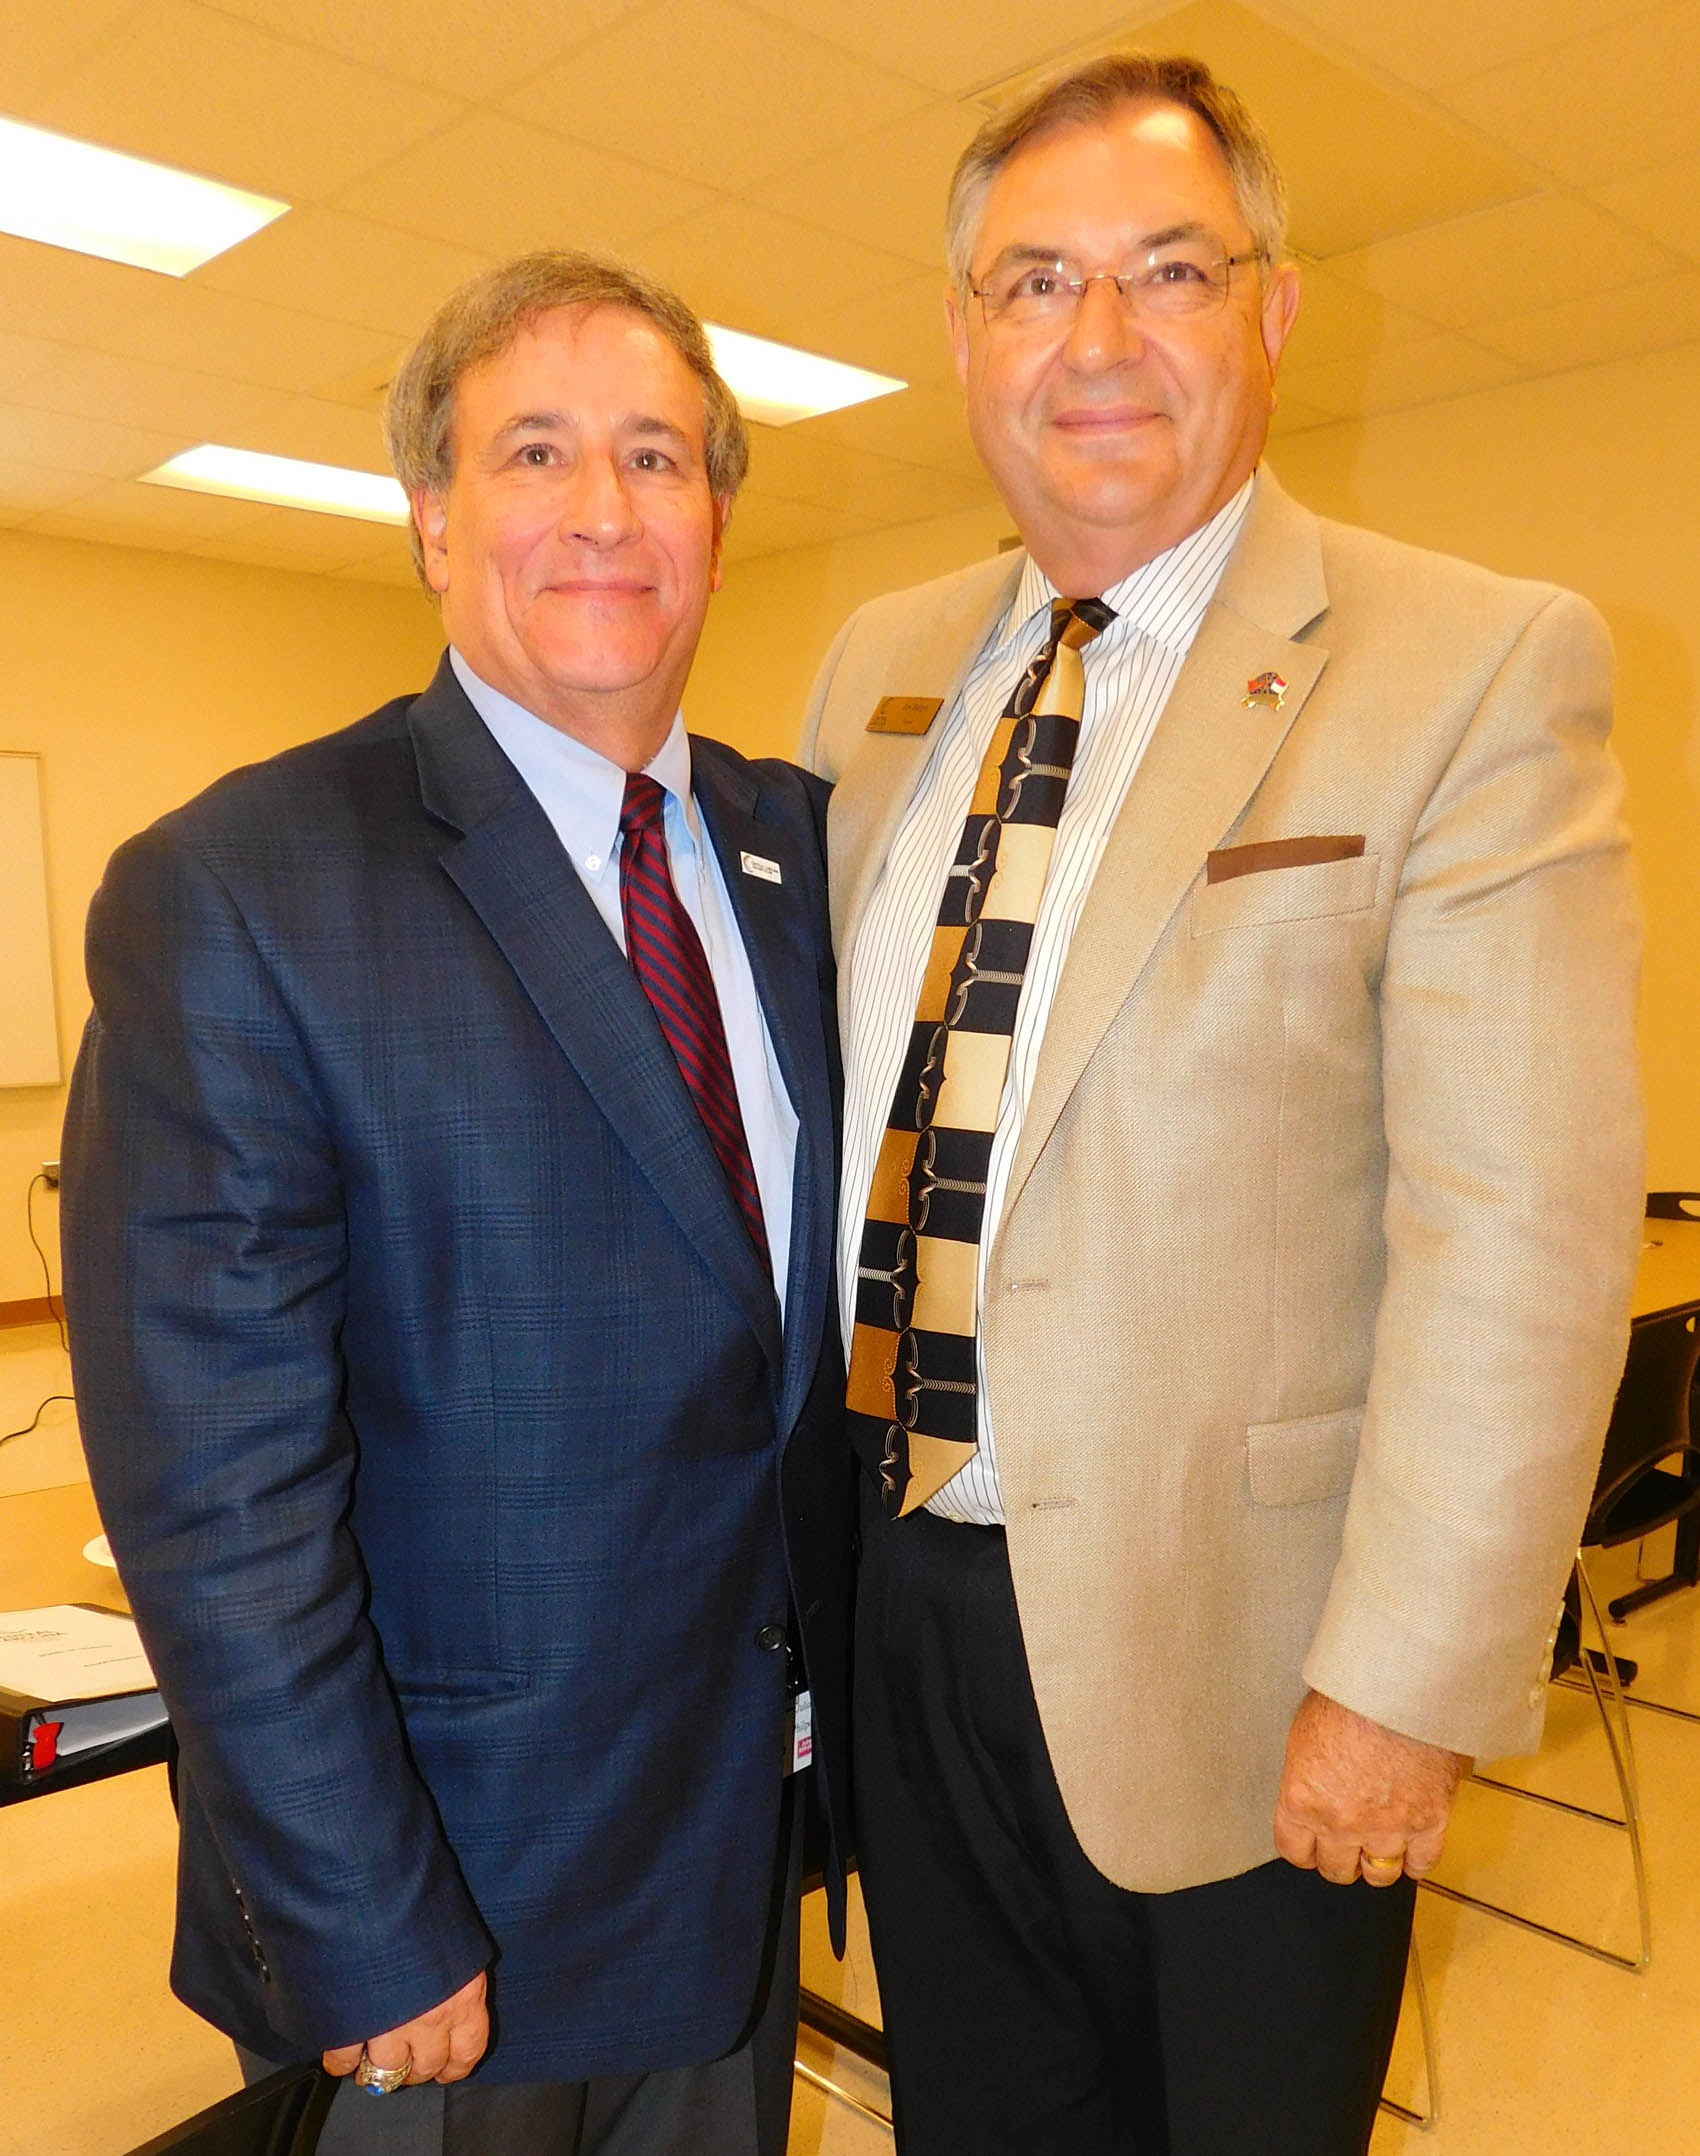 Click to enlarge,  Julian Philpott (left) and Jim Burgin have been reappointed as Chairman and Vice Chairman, respectively, of the Central Carolina Community College Board of Trustees for 2017-2018.